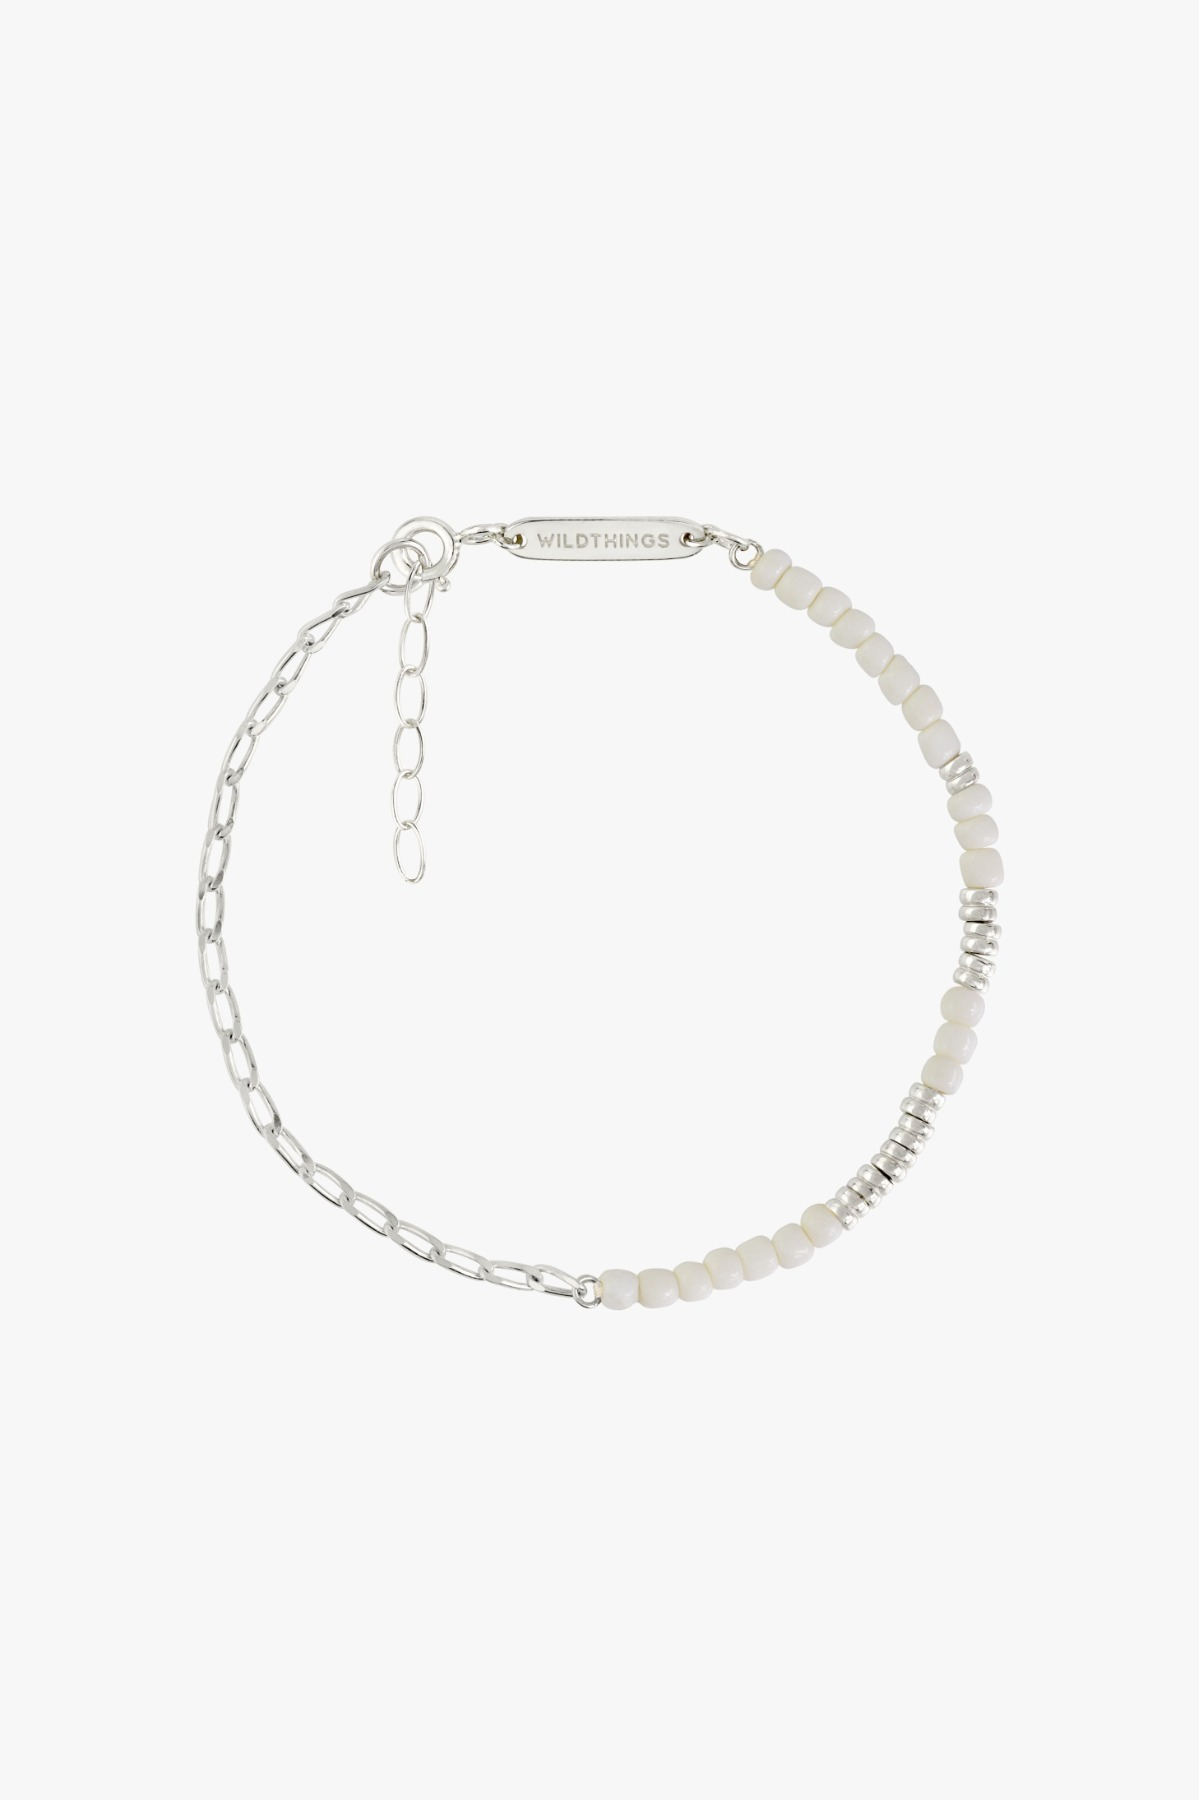 wildthings collectables Think twice chain bracelet